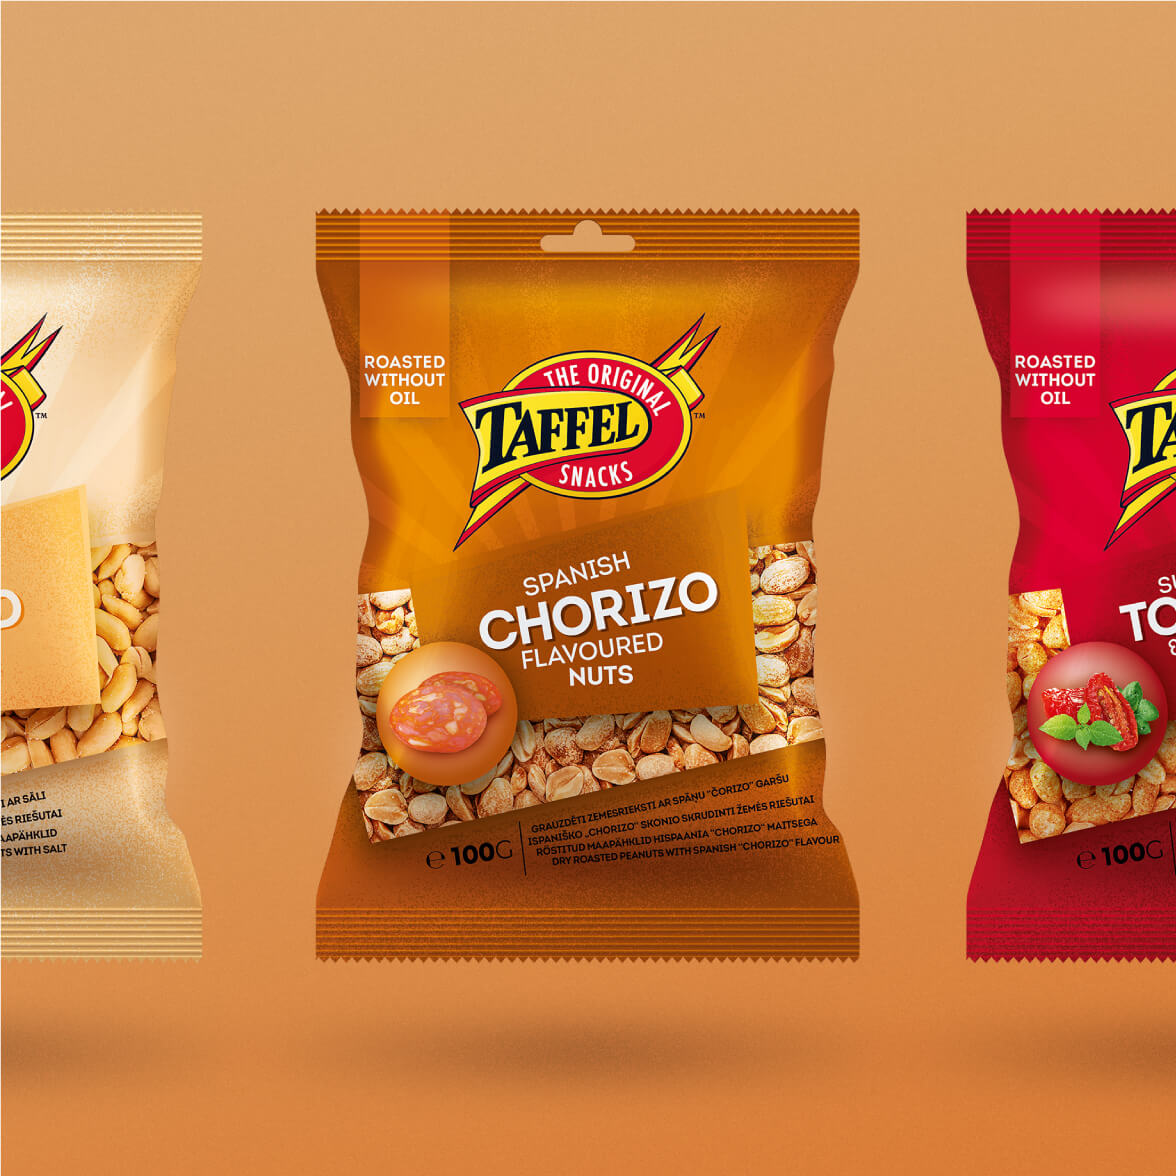 Taffel Nuts - packaging redesign